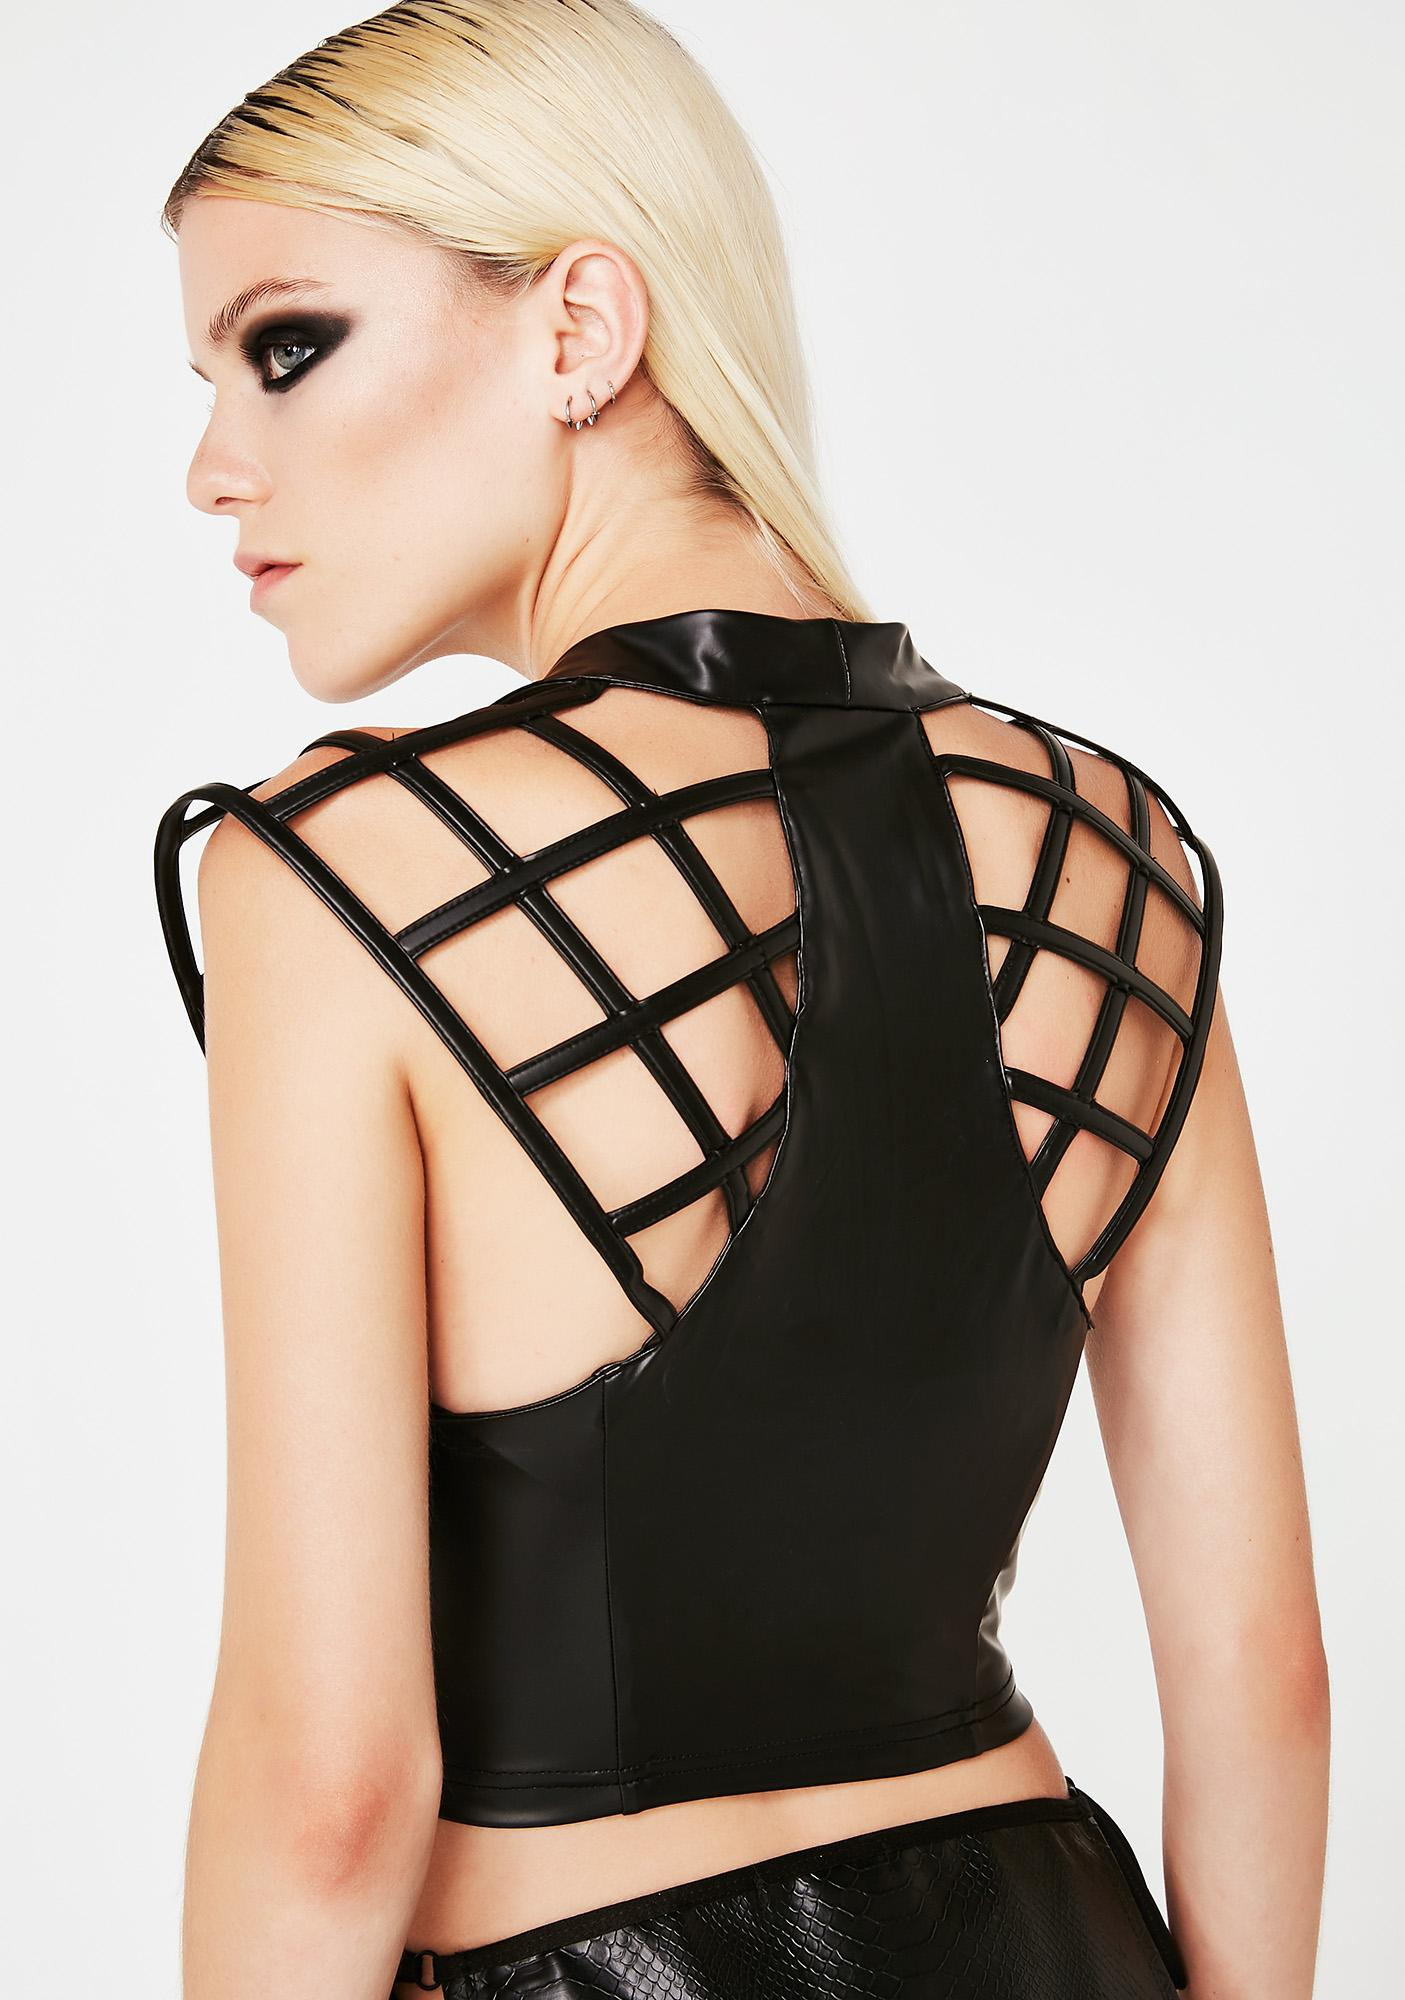 Club Exx Techno Sorceress Cage Top